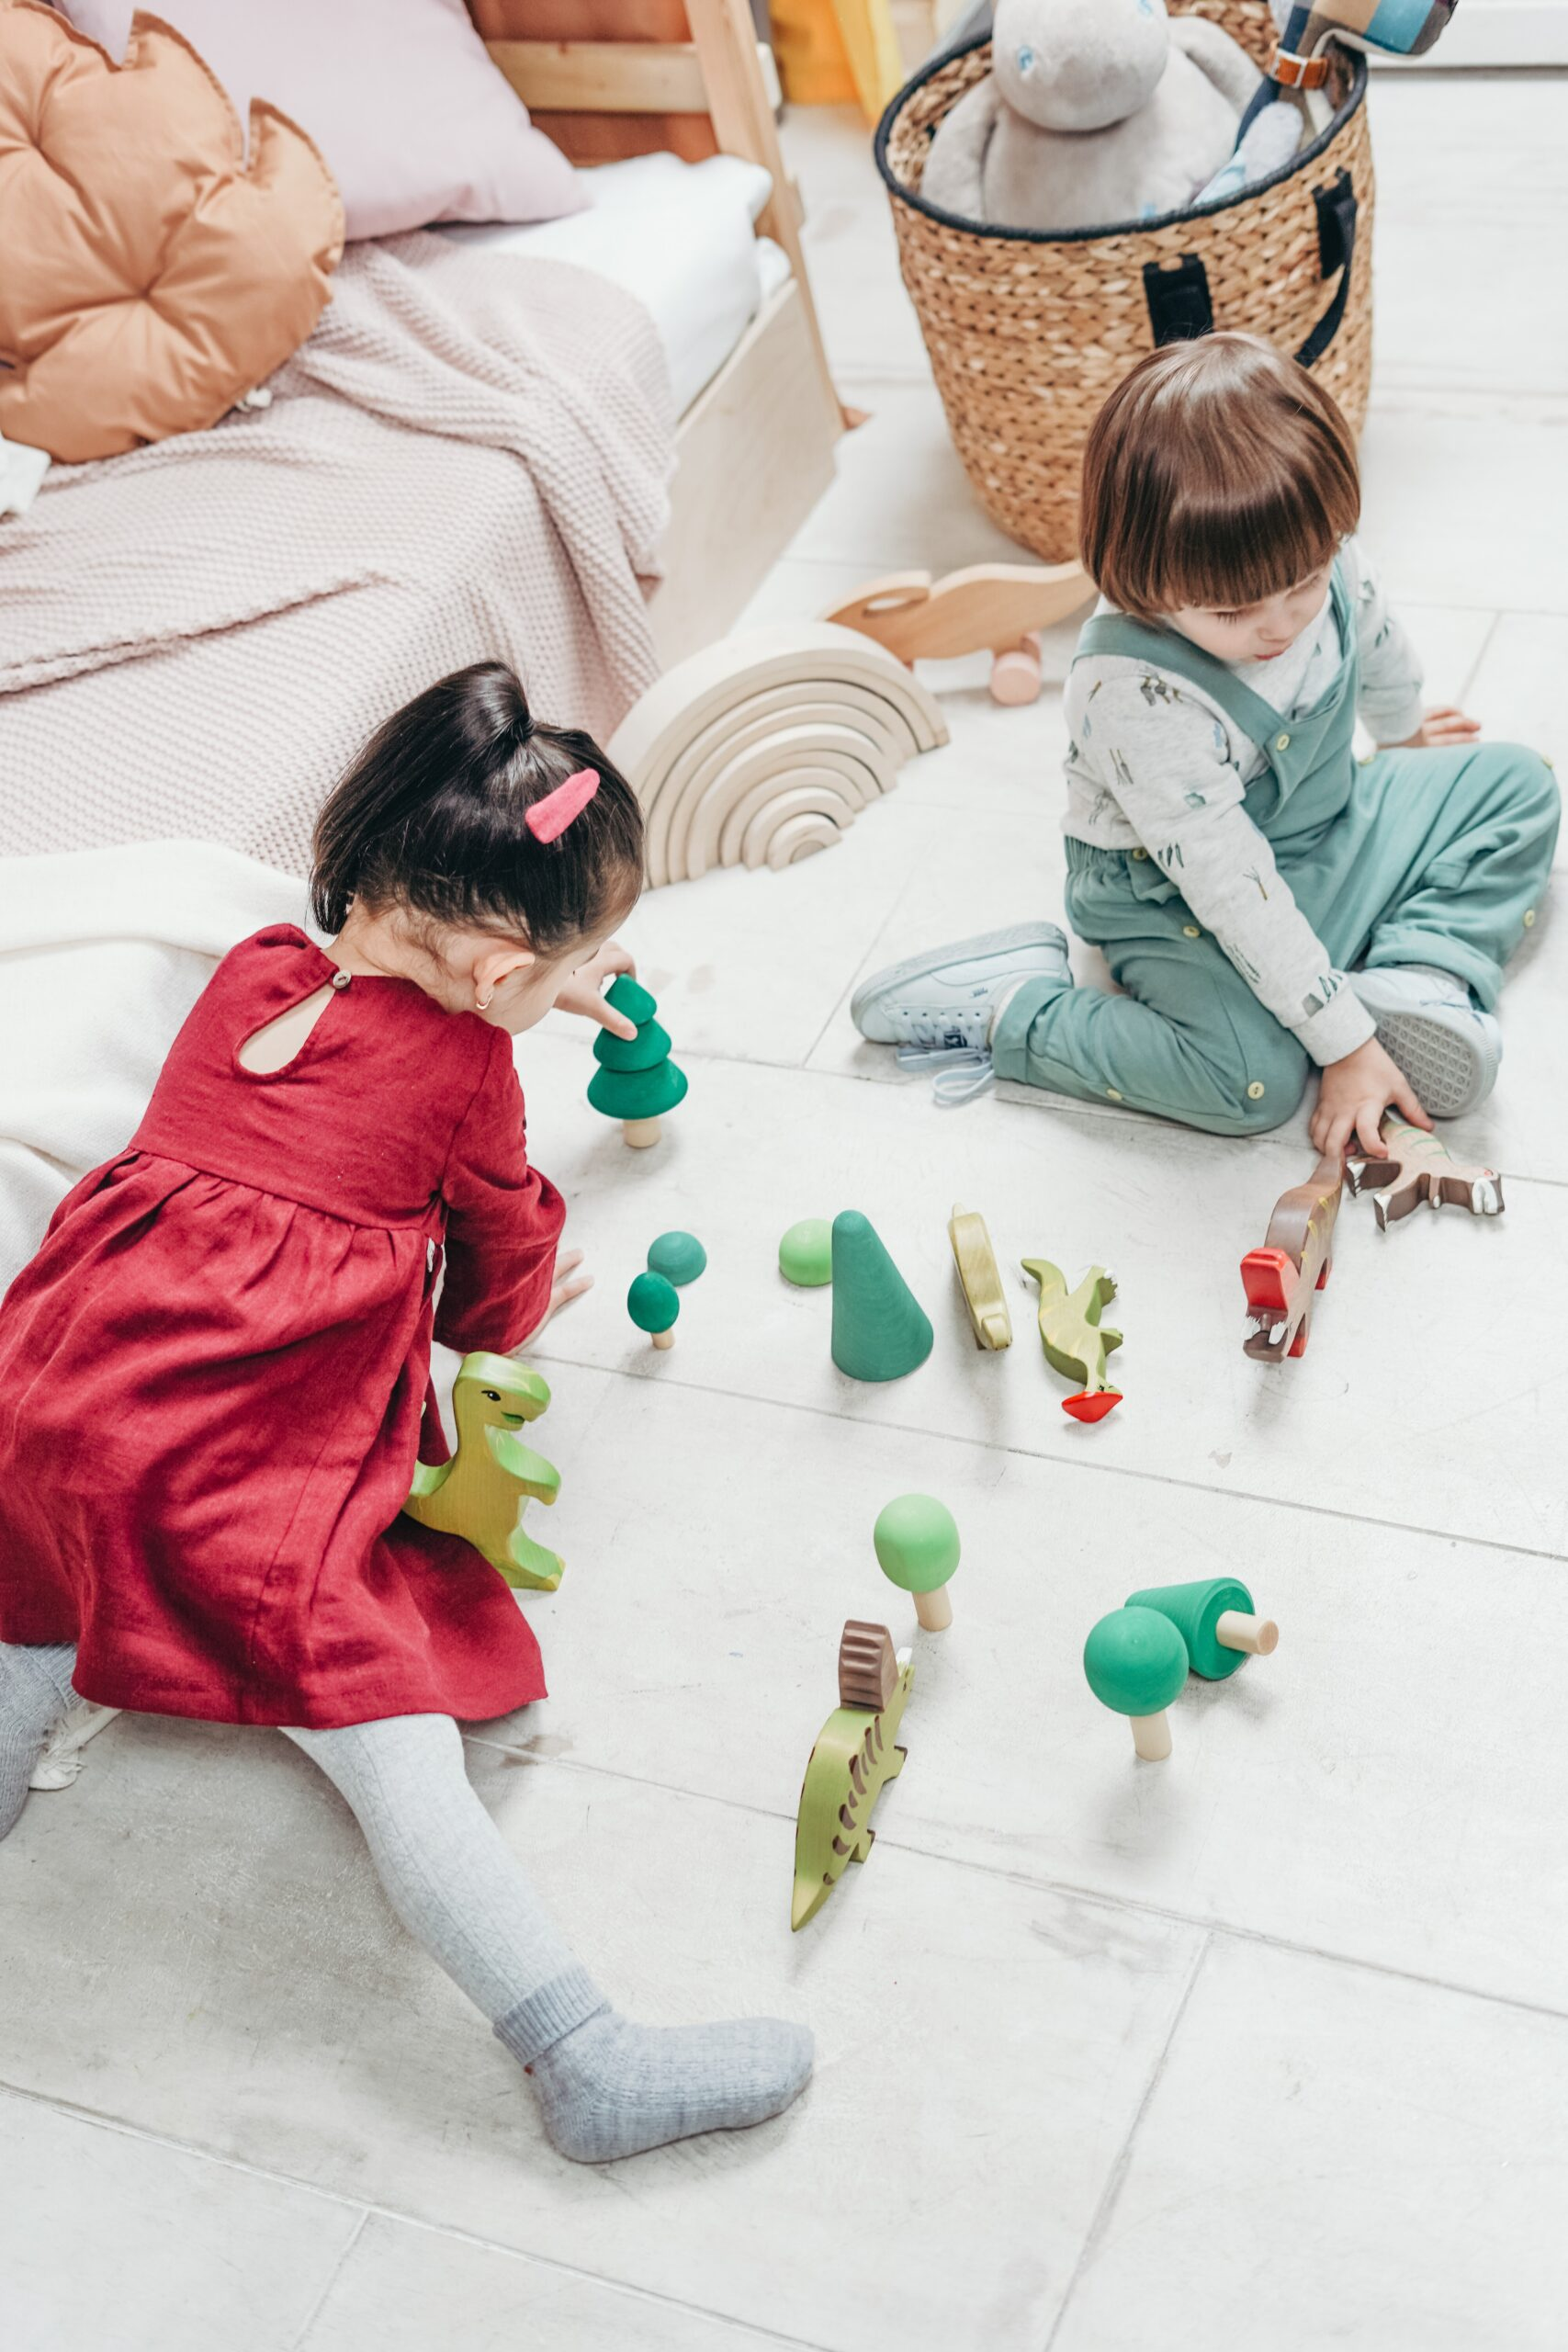 Children Can Learn With Classic Toys